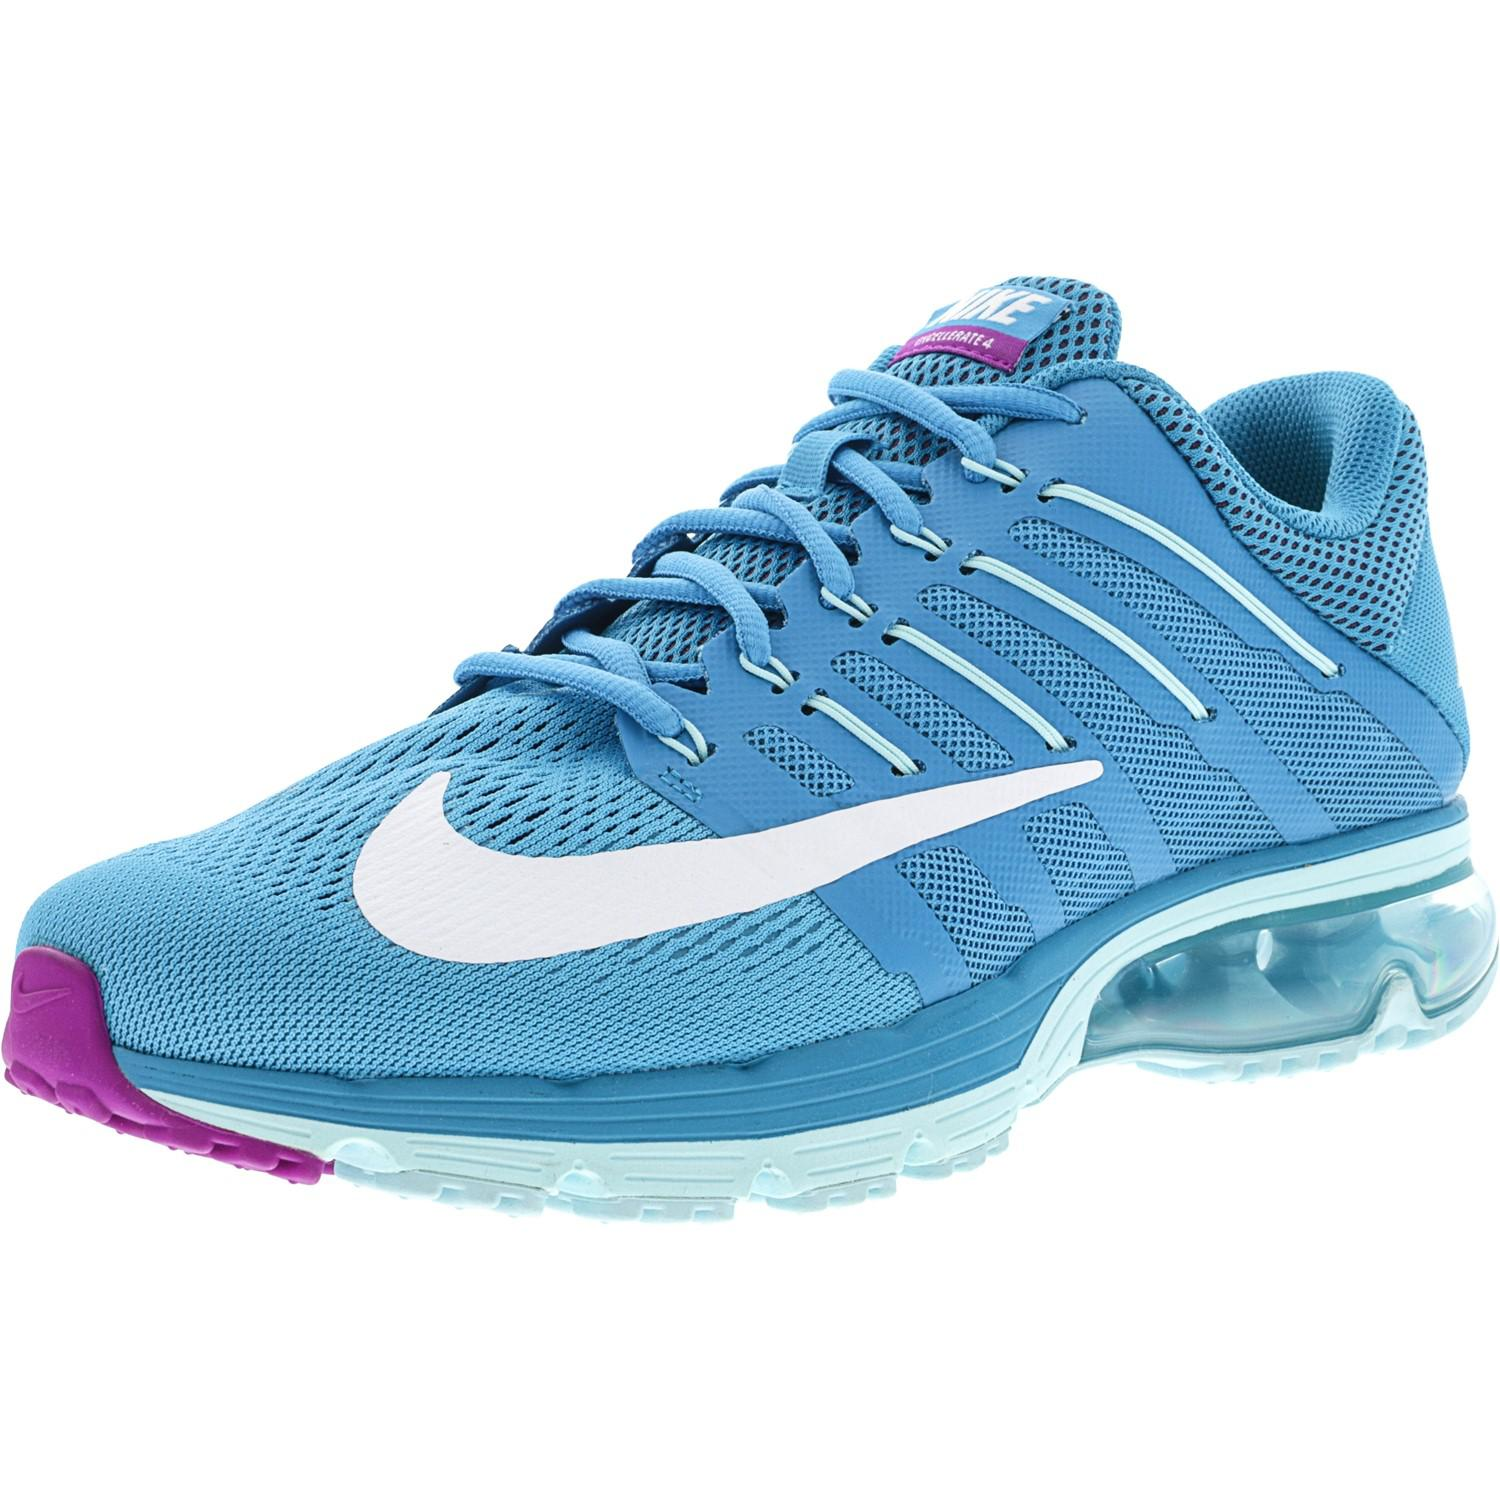 e3593f7ea9d Lyst - Nike Air Max Excellerate 4 Ankle-high Running Shoe - 11m in ...